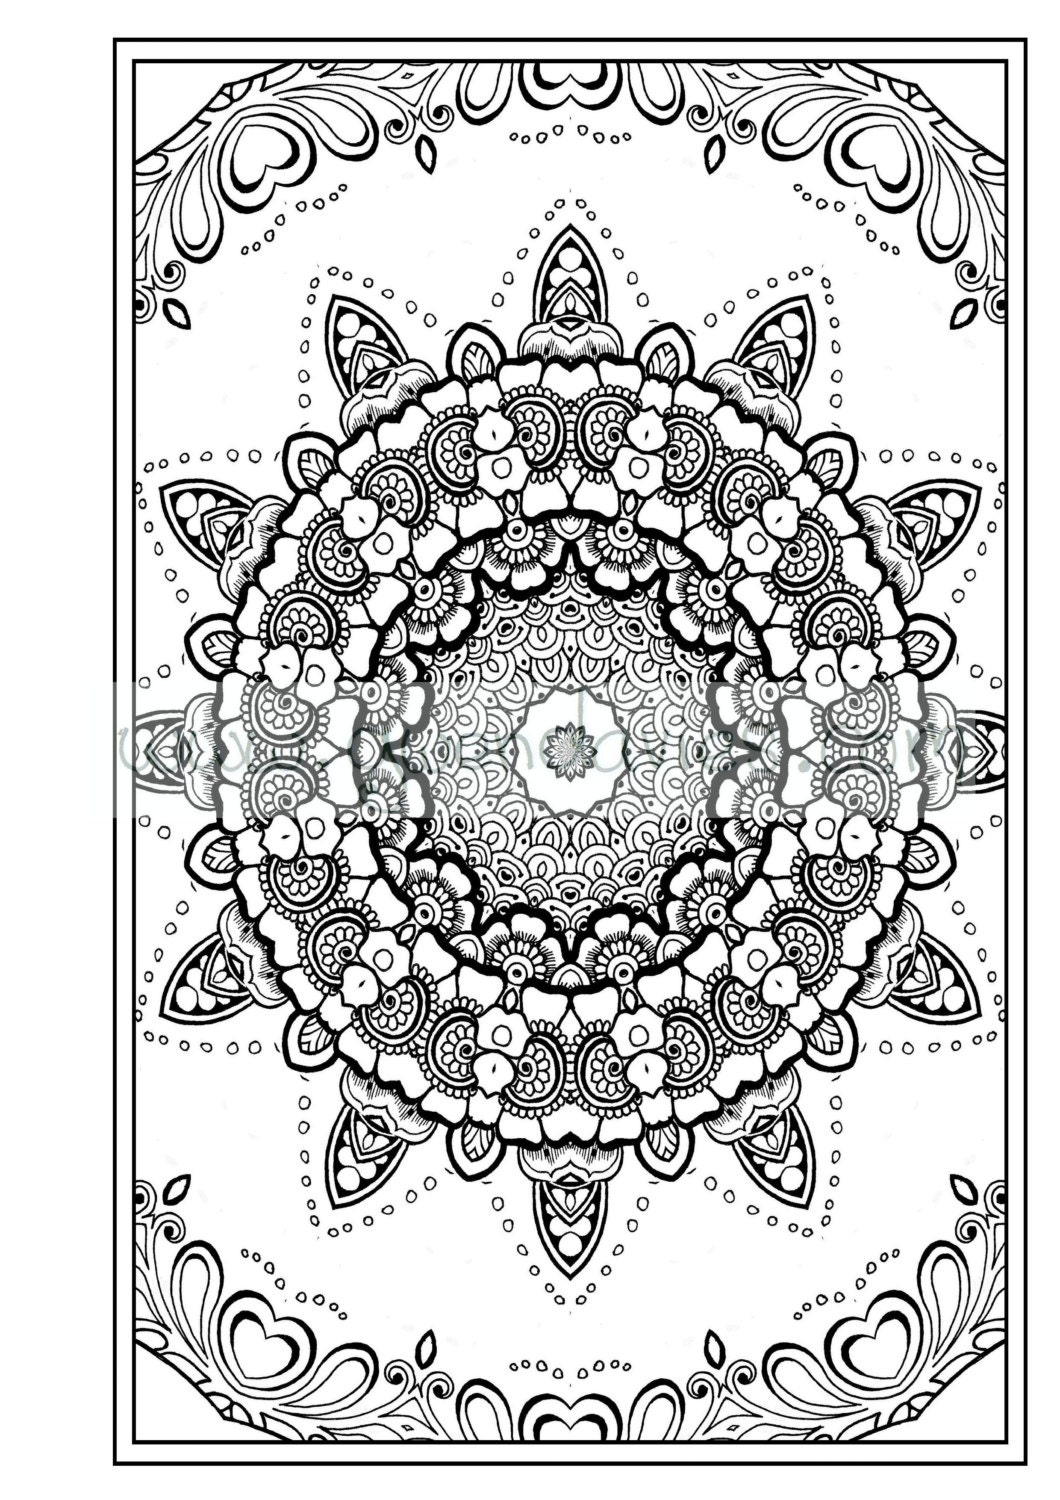 Adult colouring in pdf download zen mandalas garden anti for Coloring pages adults pdf